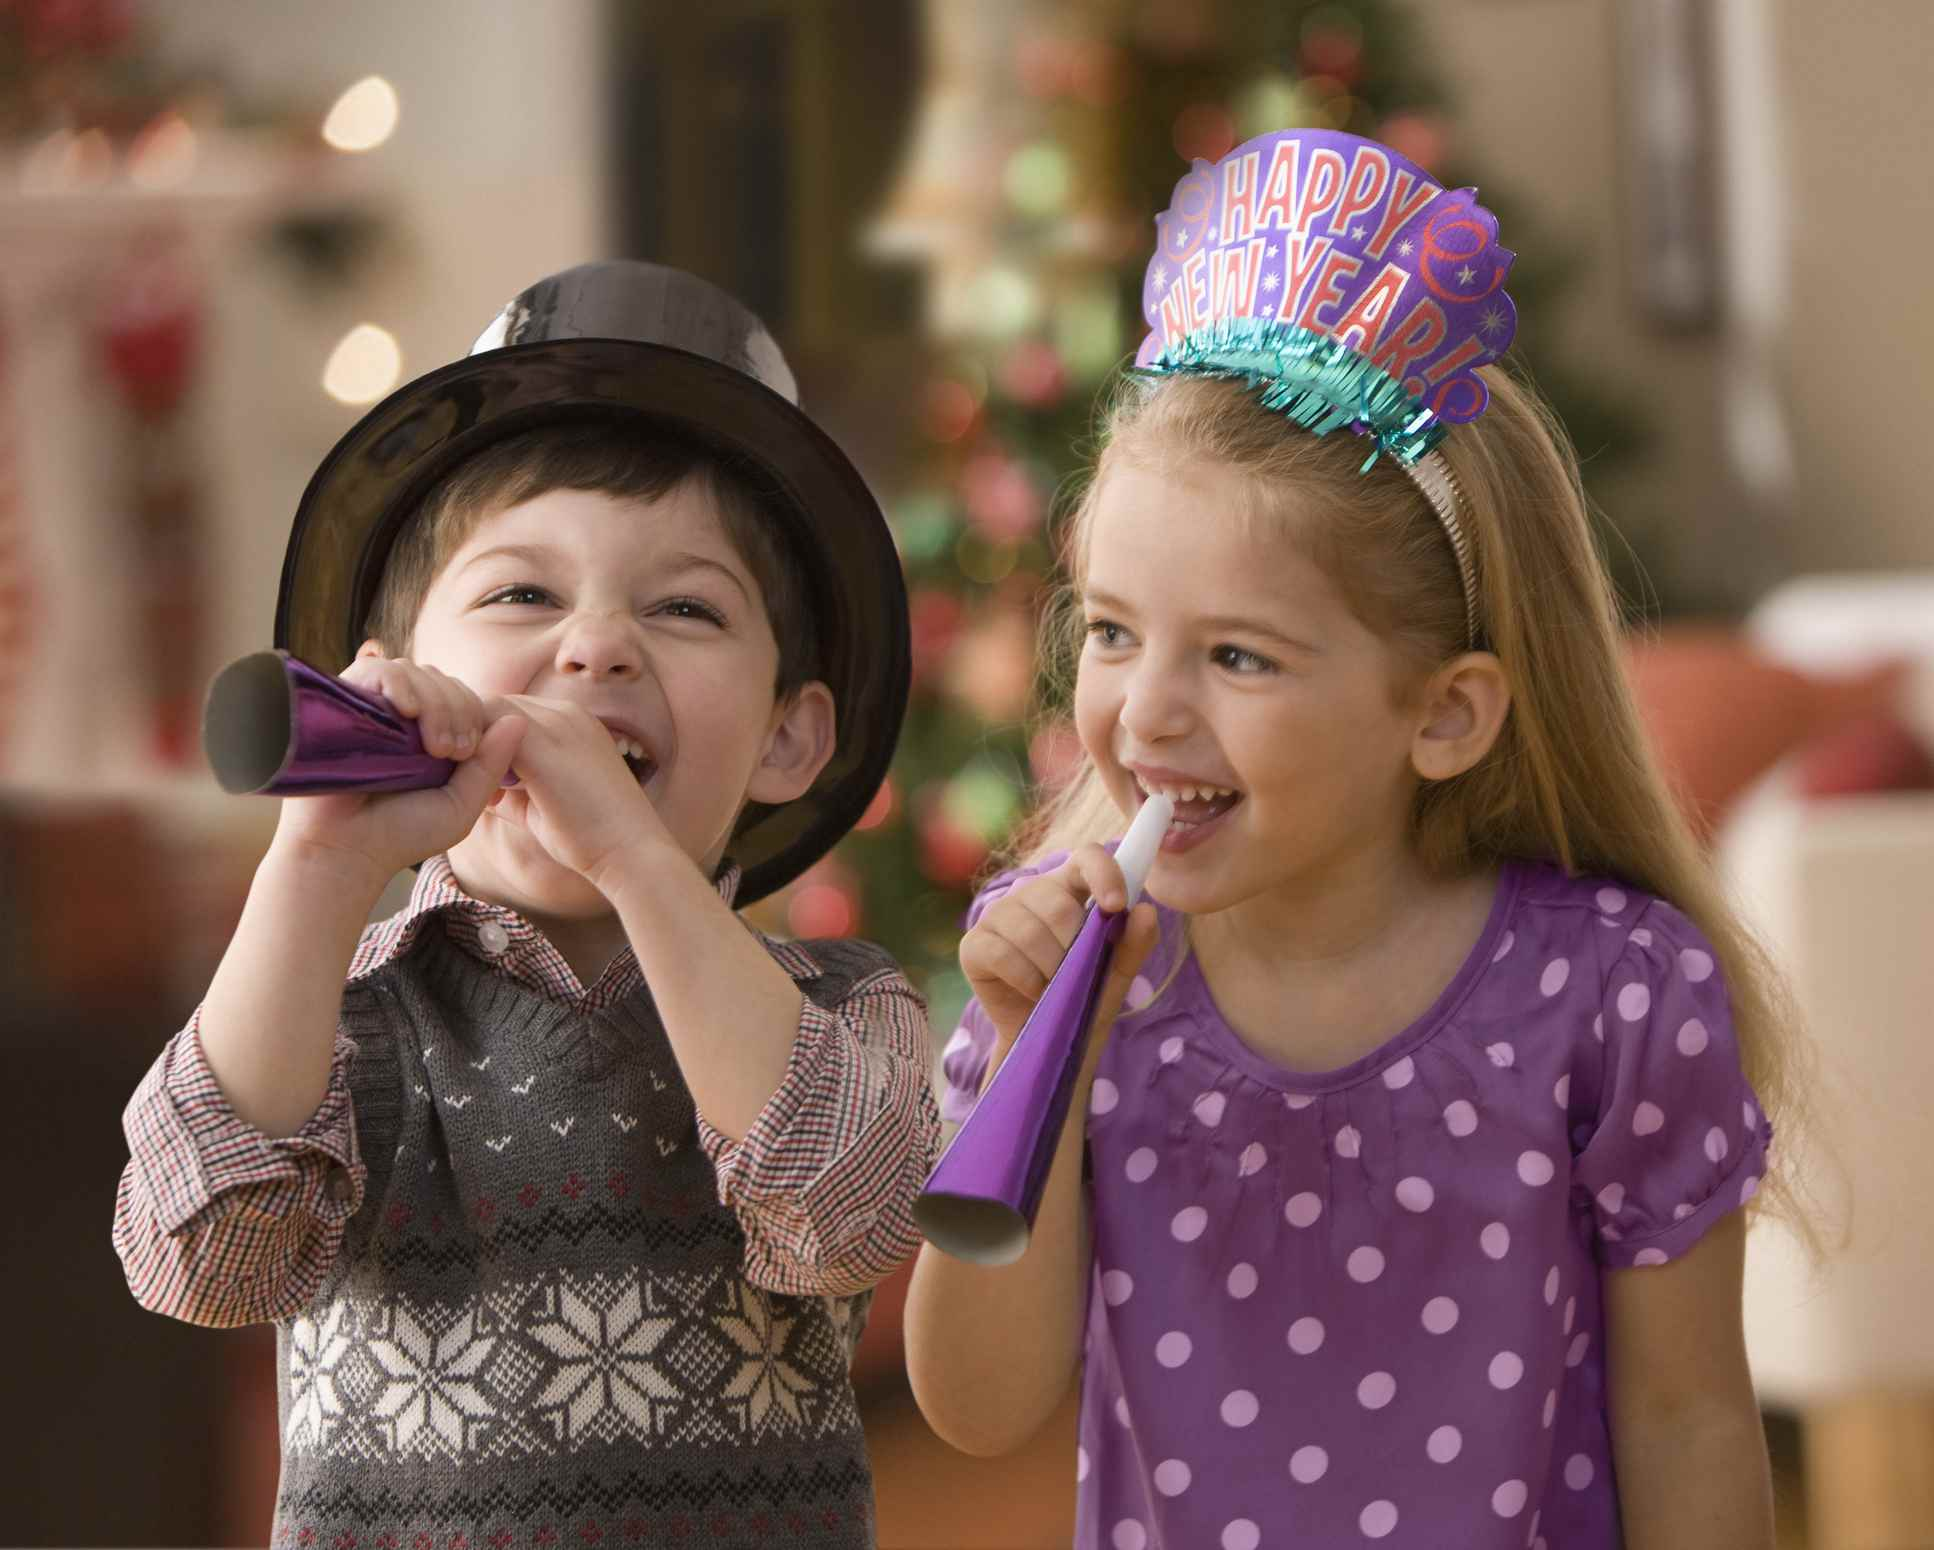 Kids on New Years Eve